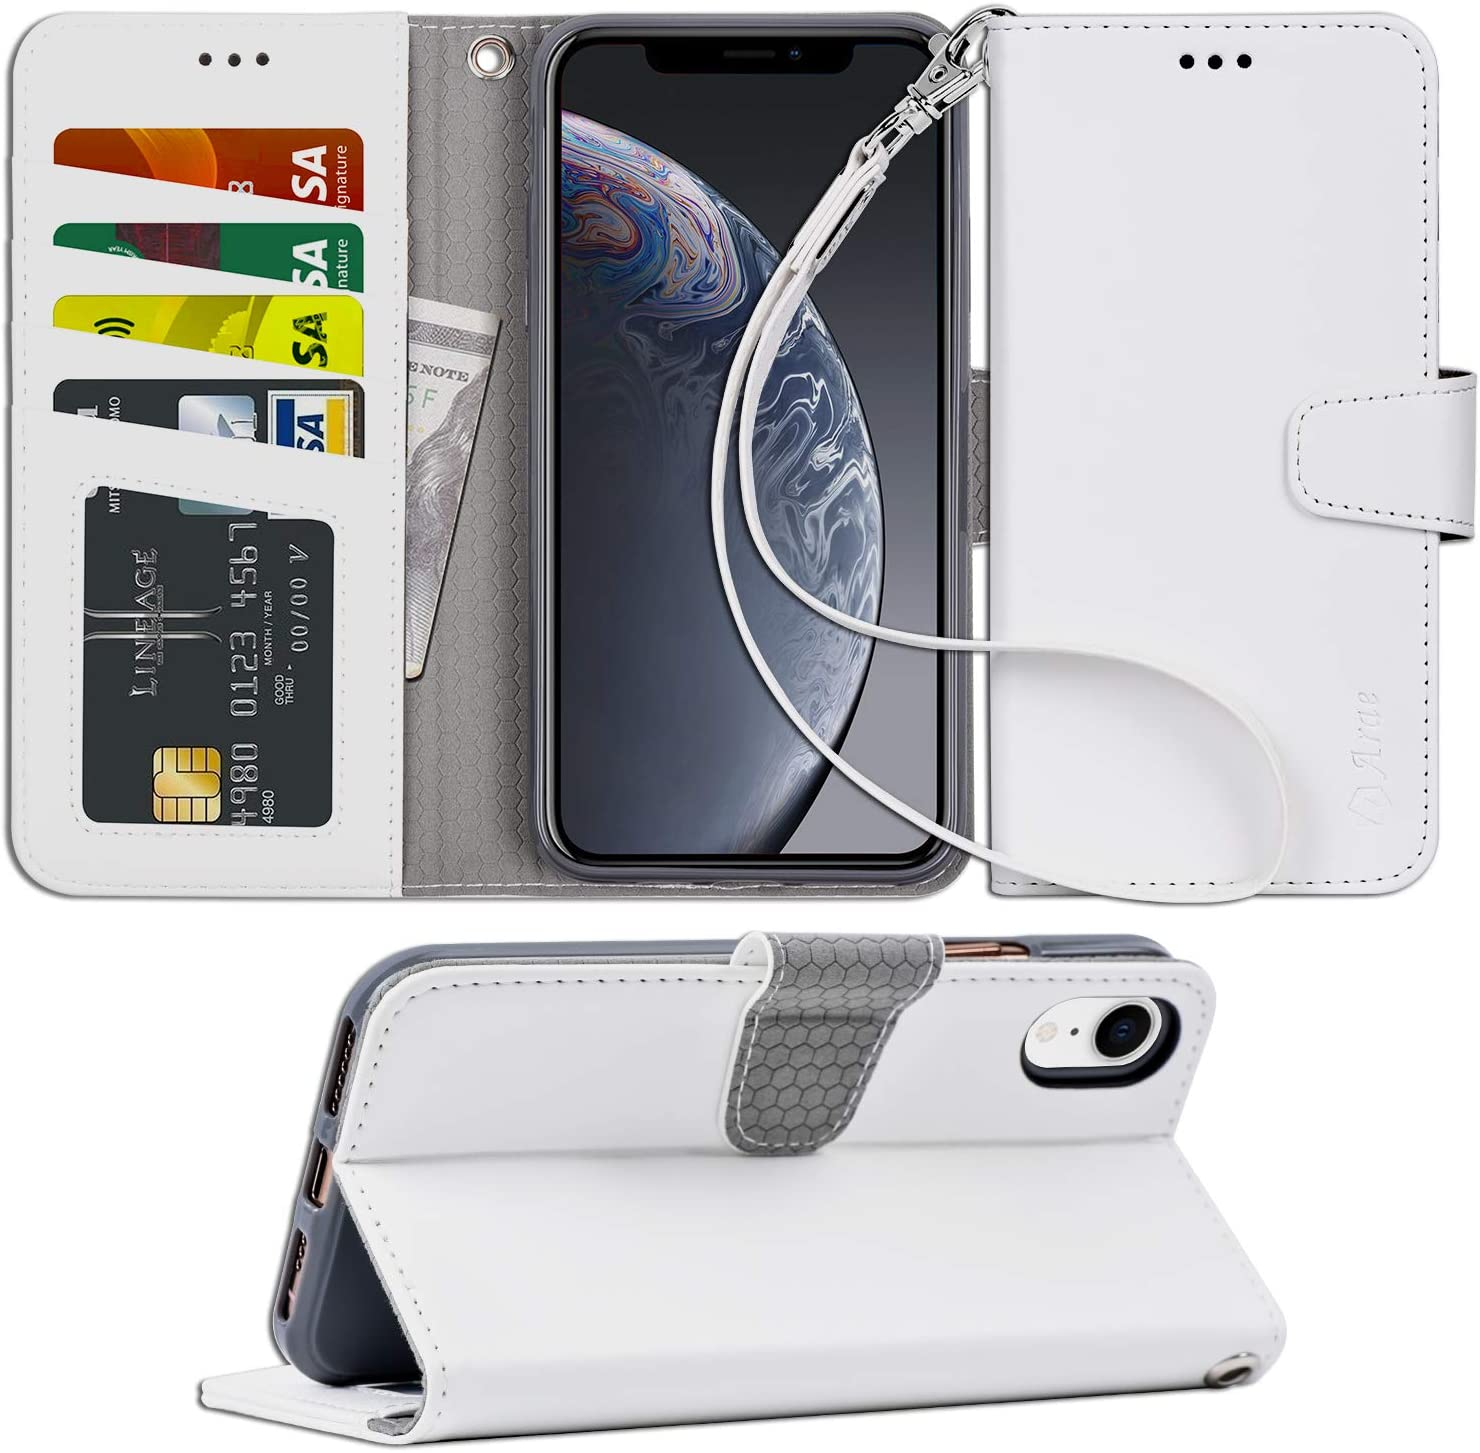 Arae Wallet Case for iPhone xr 2018 PU Leather flip case Cover [Stand Feature] with Wrist Strap and [4-Slots] ID&Credit Cards Pocket for iPhone Xr 6.1 inch (xr 6.1 White)